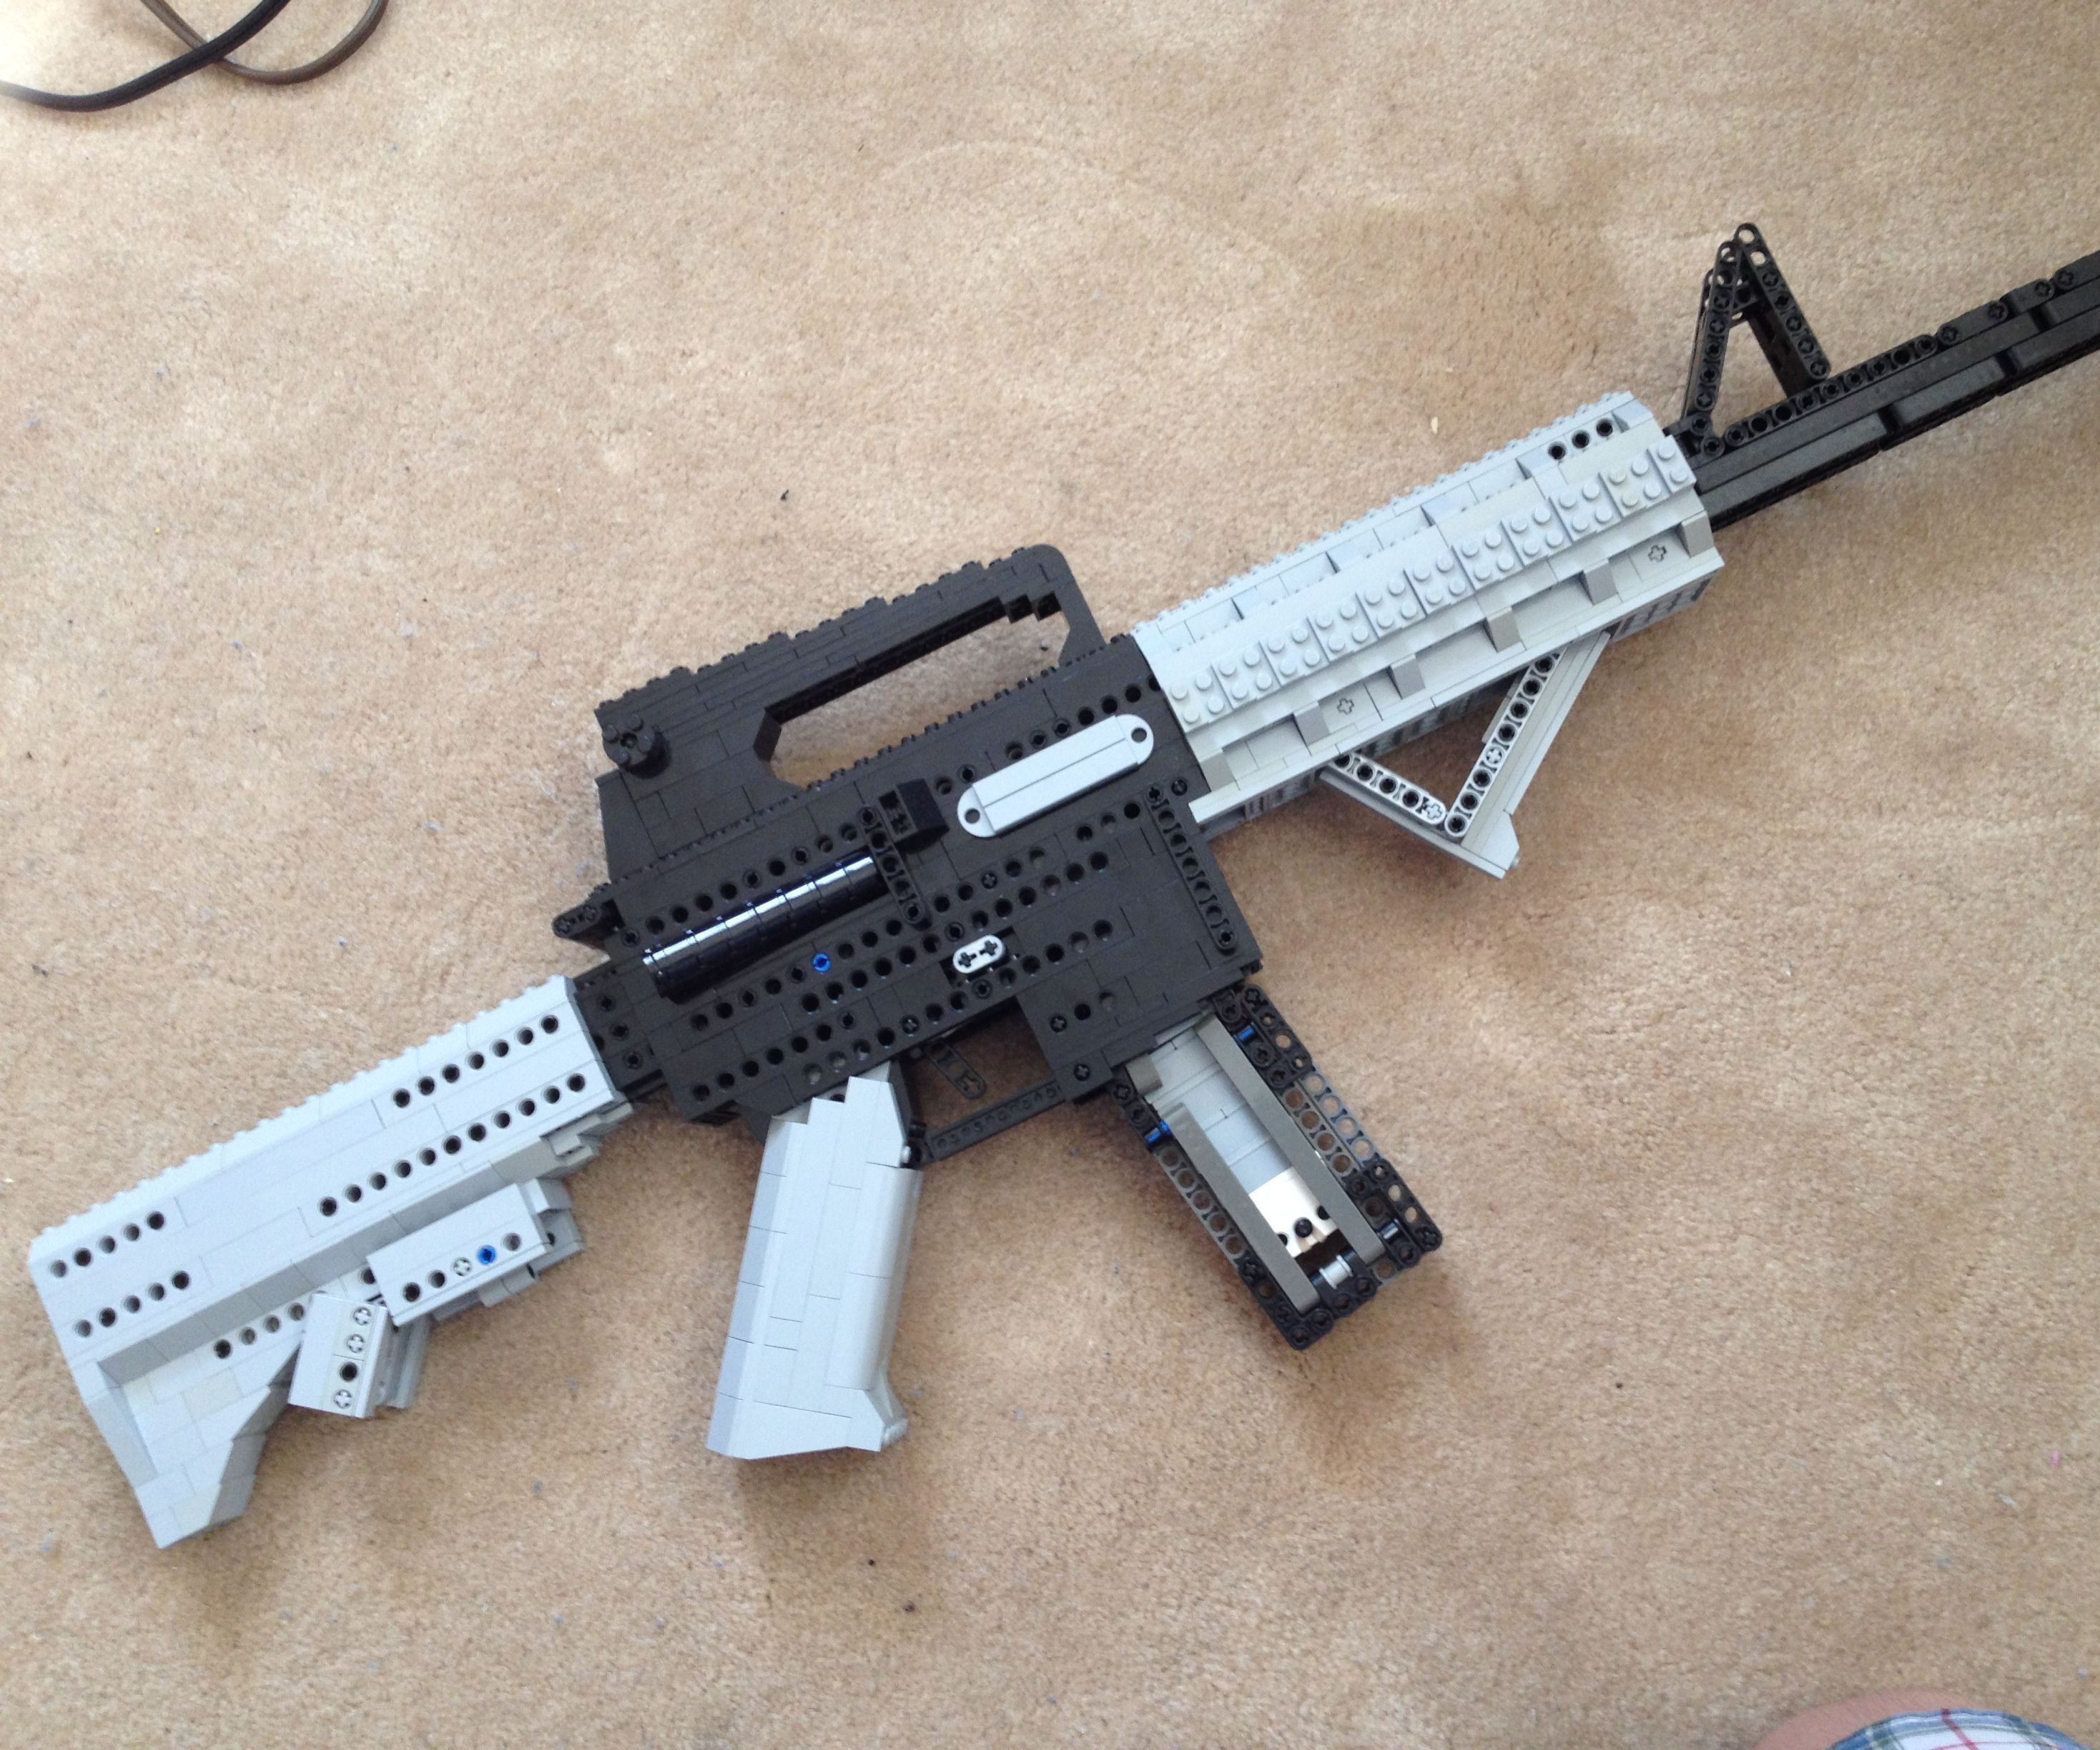 A Shootible LEGO M4A1